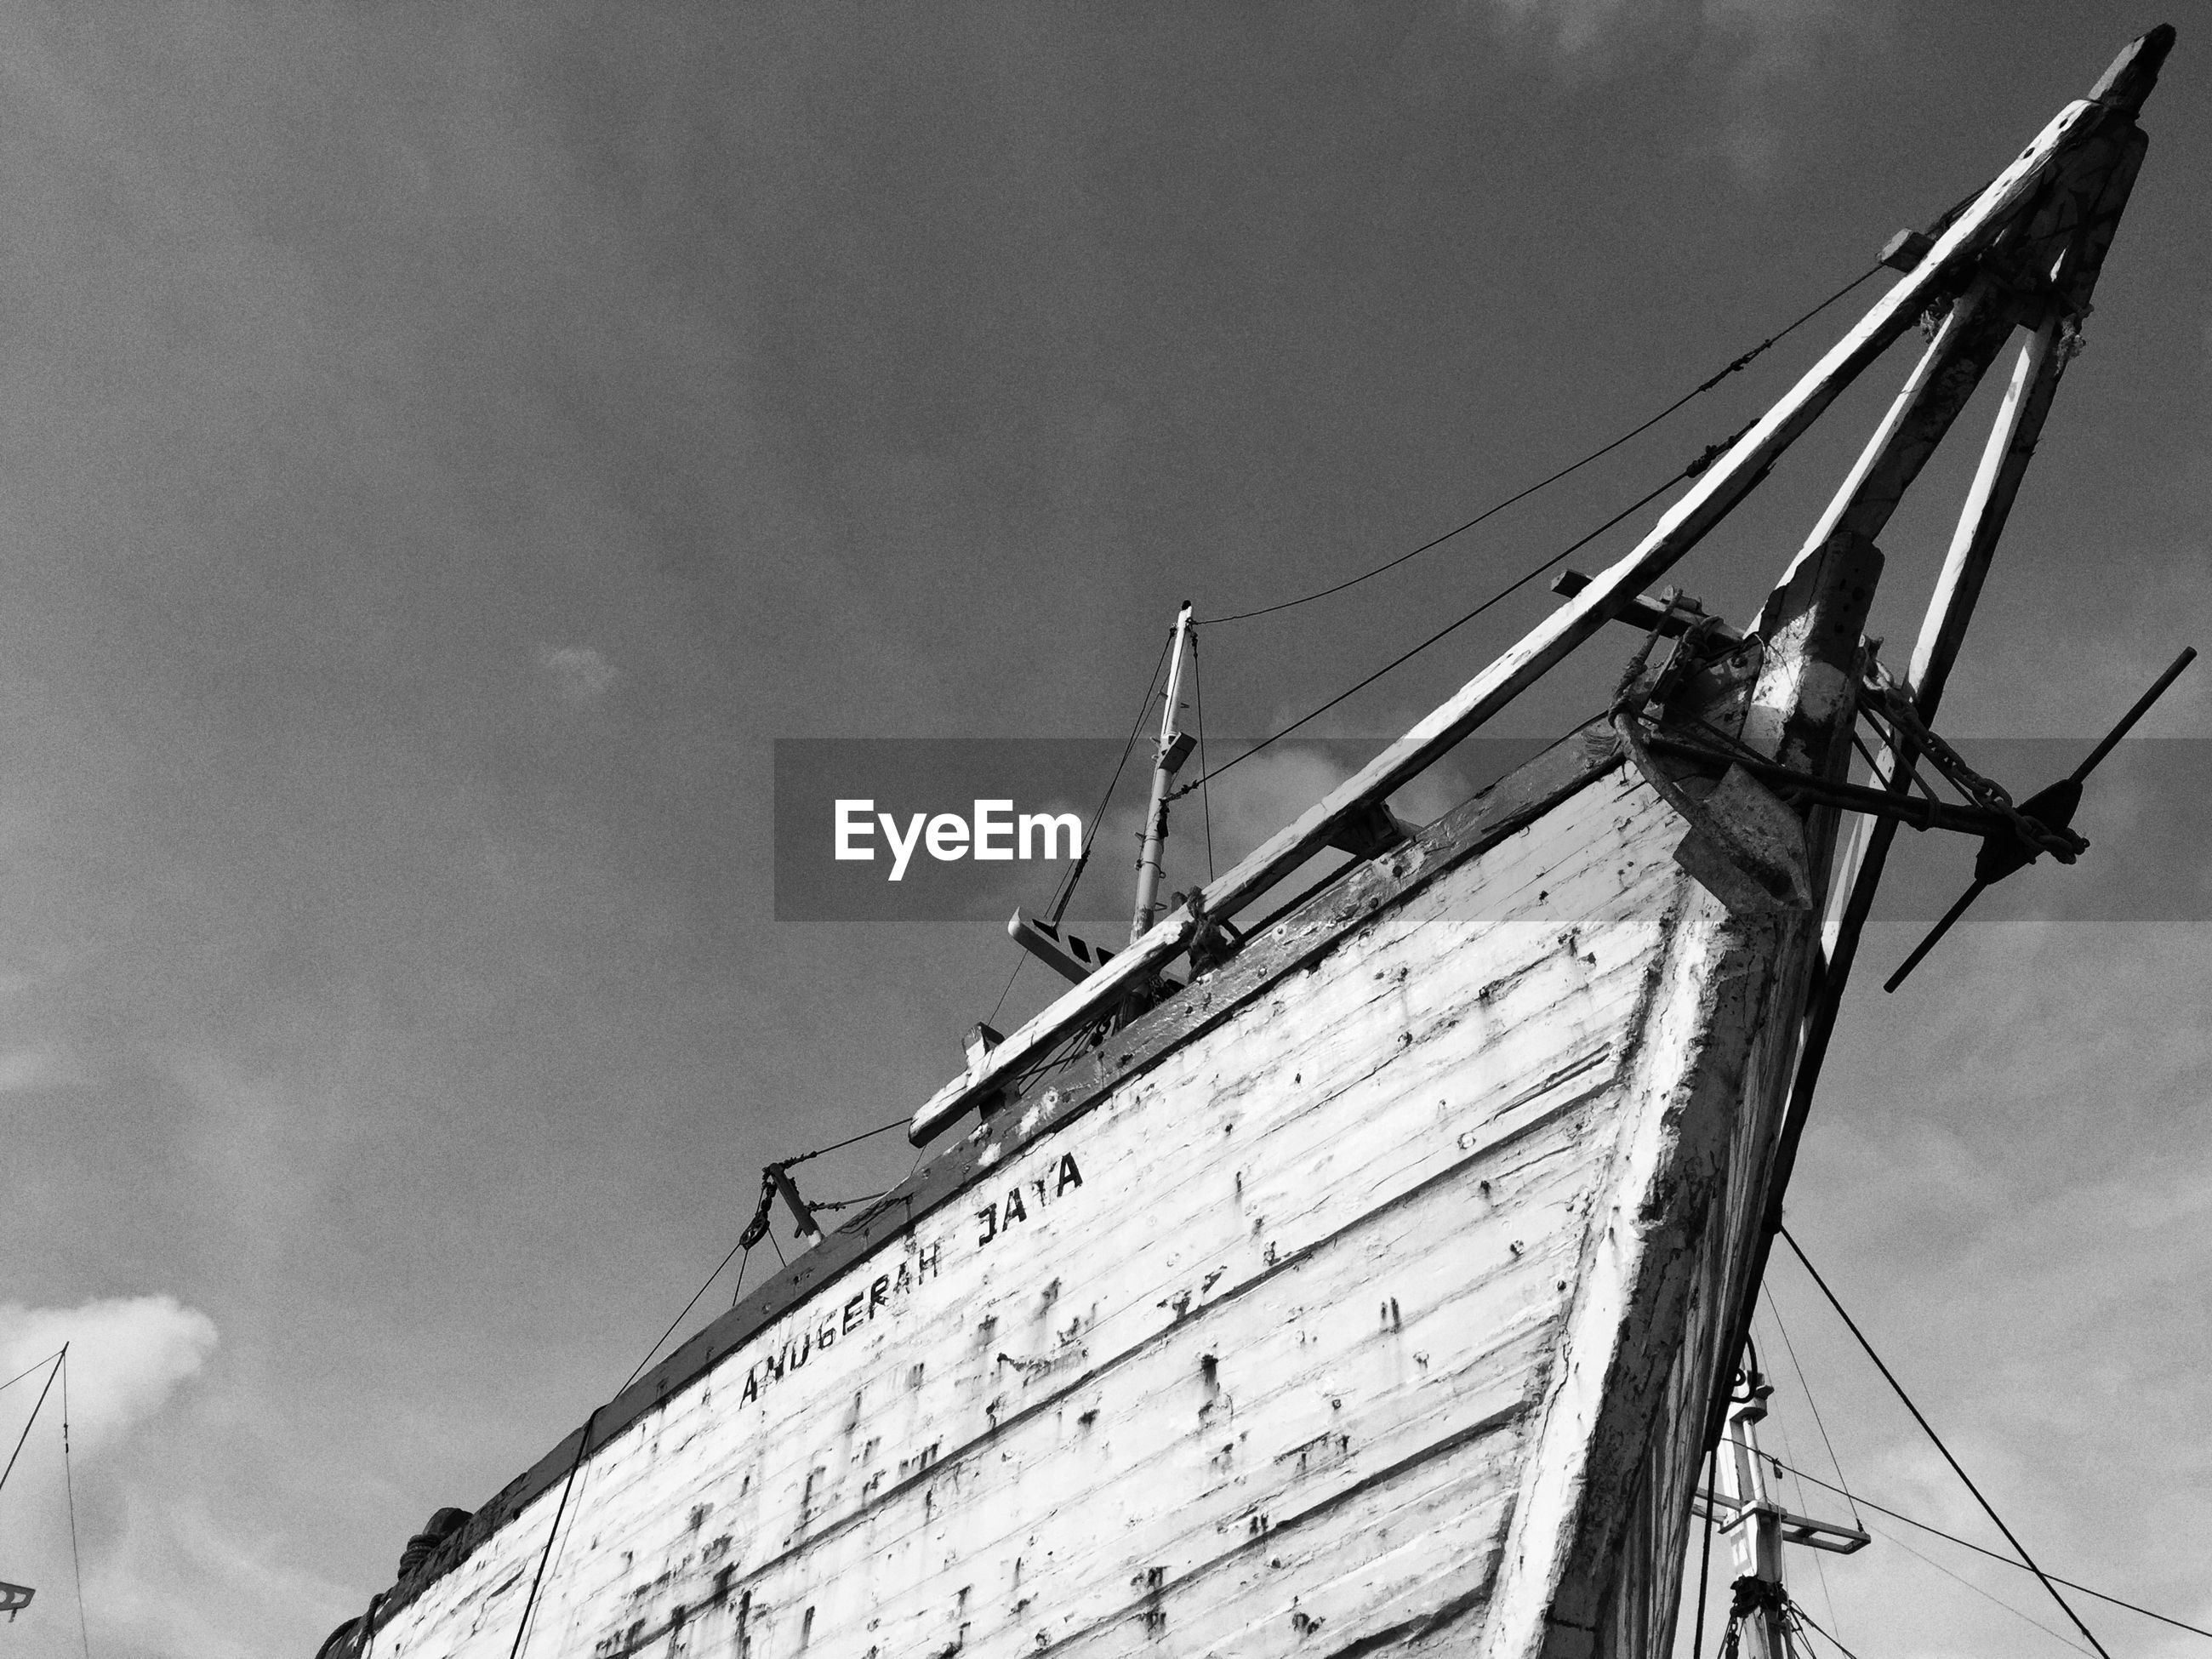 Low angle view of boat against sky